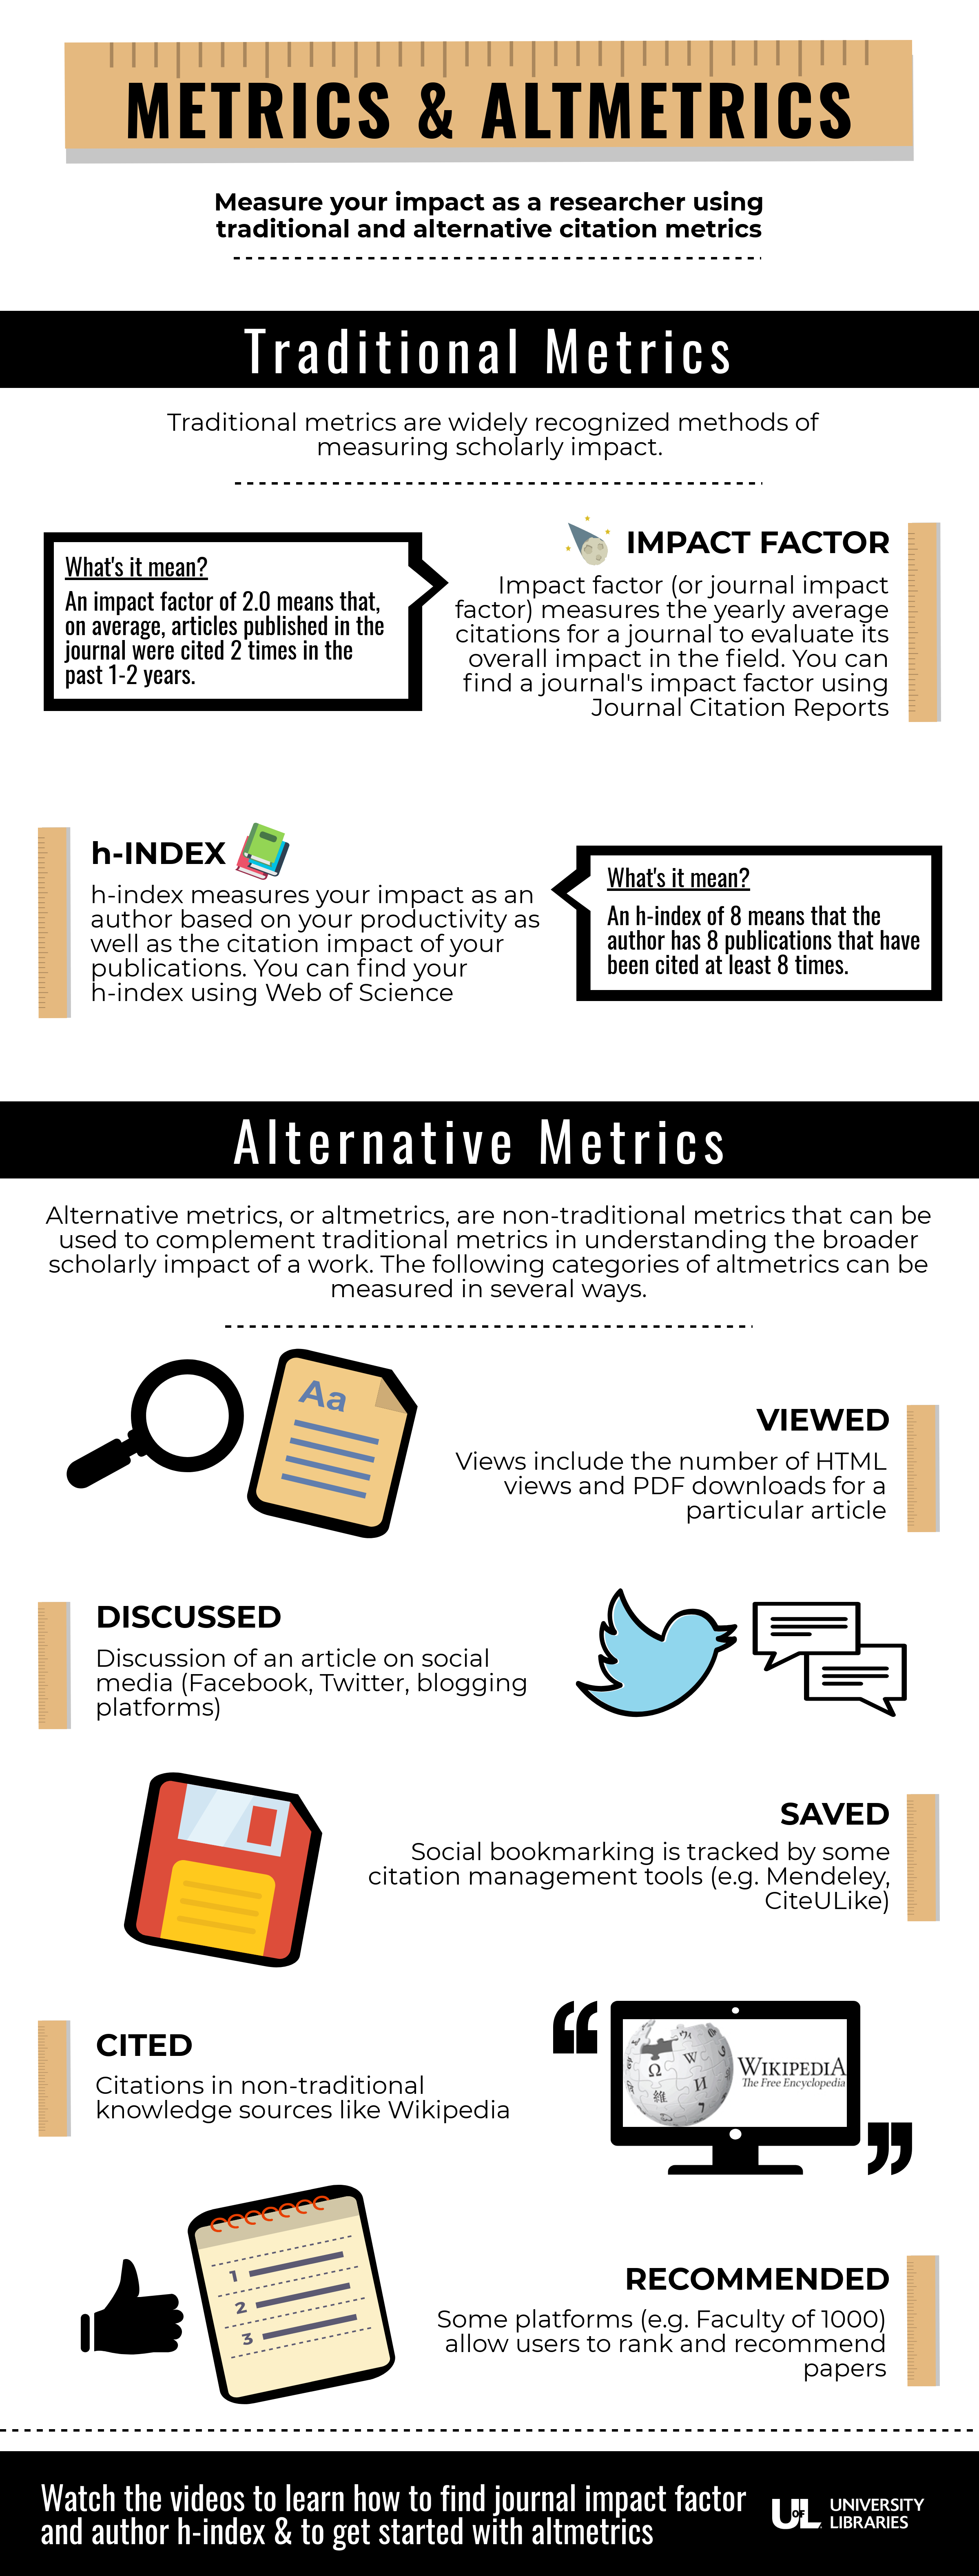 Metrics and Altmetrics. Measure the impact of your work and your impact as a researcher using traditional and alternative metrics.Traditional Metrics: Traditional metrics are widely recognized methods of measuring scholarly impact. Impact factor: Impact factor (or journal impact factor) measures the yearly average citations for a journal to evaluate its overall impact in the field. You can find a journal's impact factor using Journal Citation Reports.What's it mean? An impact factor of 2.0 means that, on average, articles published in the journal were cited 2 times in the past 1-2 years.h-index: h-index measures your impact as an author based on your productivity as well as the citation impact of your publications. You can find your h-index using Web of Science.What's it mean? An h-index of 8 means that the author has 8 publications that have been cited at least 8 times.Alternative Metrics: Alternative Metrics, or altmetrics, are non-traditional metrics that can be used to complement traditional metrics in understanding the broader scholarly impact of a work. The following categories of altmetrics can be measured in several ways.Viewed: Views include the number of HTML views and PDF downloads for a particular article. Discussed: Discussion of an article on social media (Facebook, Twitter, blogging platforms). Saved: Social bookmarking is tracked by some citation management tools (e.g. Mendeley, CiteULike). Cited: Citations in non-traditional knowledge sources like Wikipedia. Recommended: Some platforms (e.g. Faculty of 1000) allow users to rank and recommend papers.Watch the videos to learn how to find journal impact factor and author h-index & to get started with altmetrics.